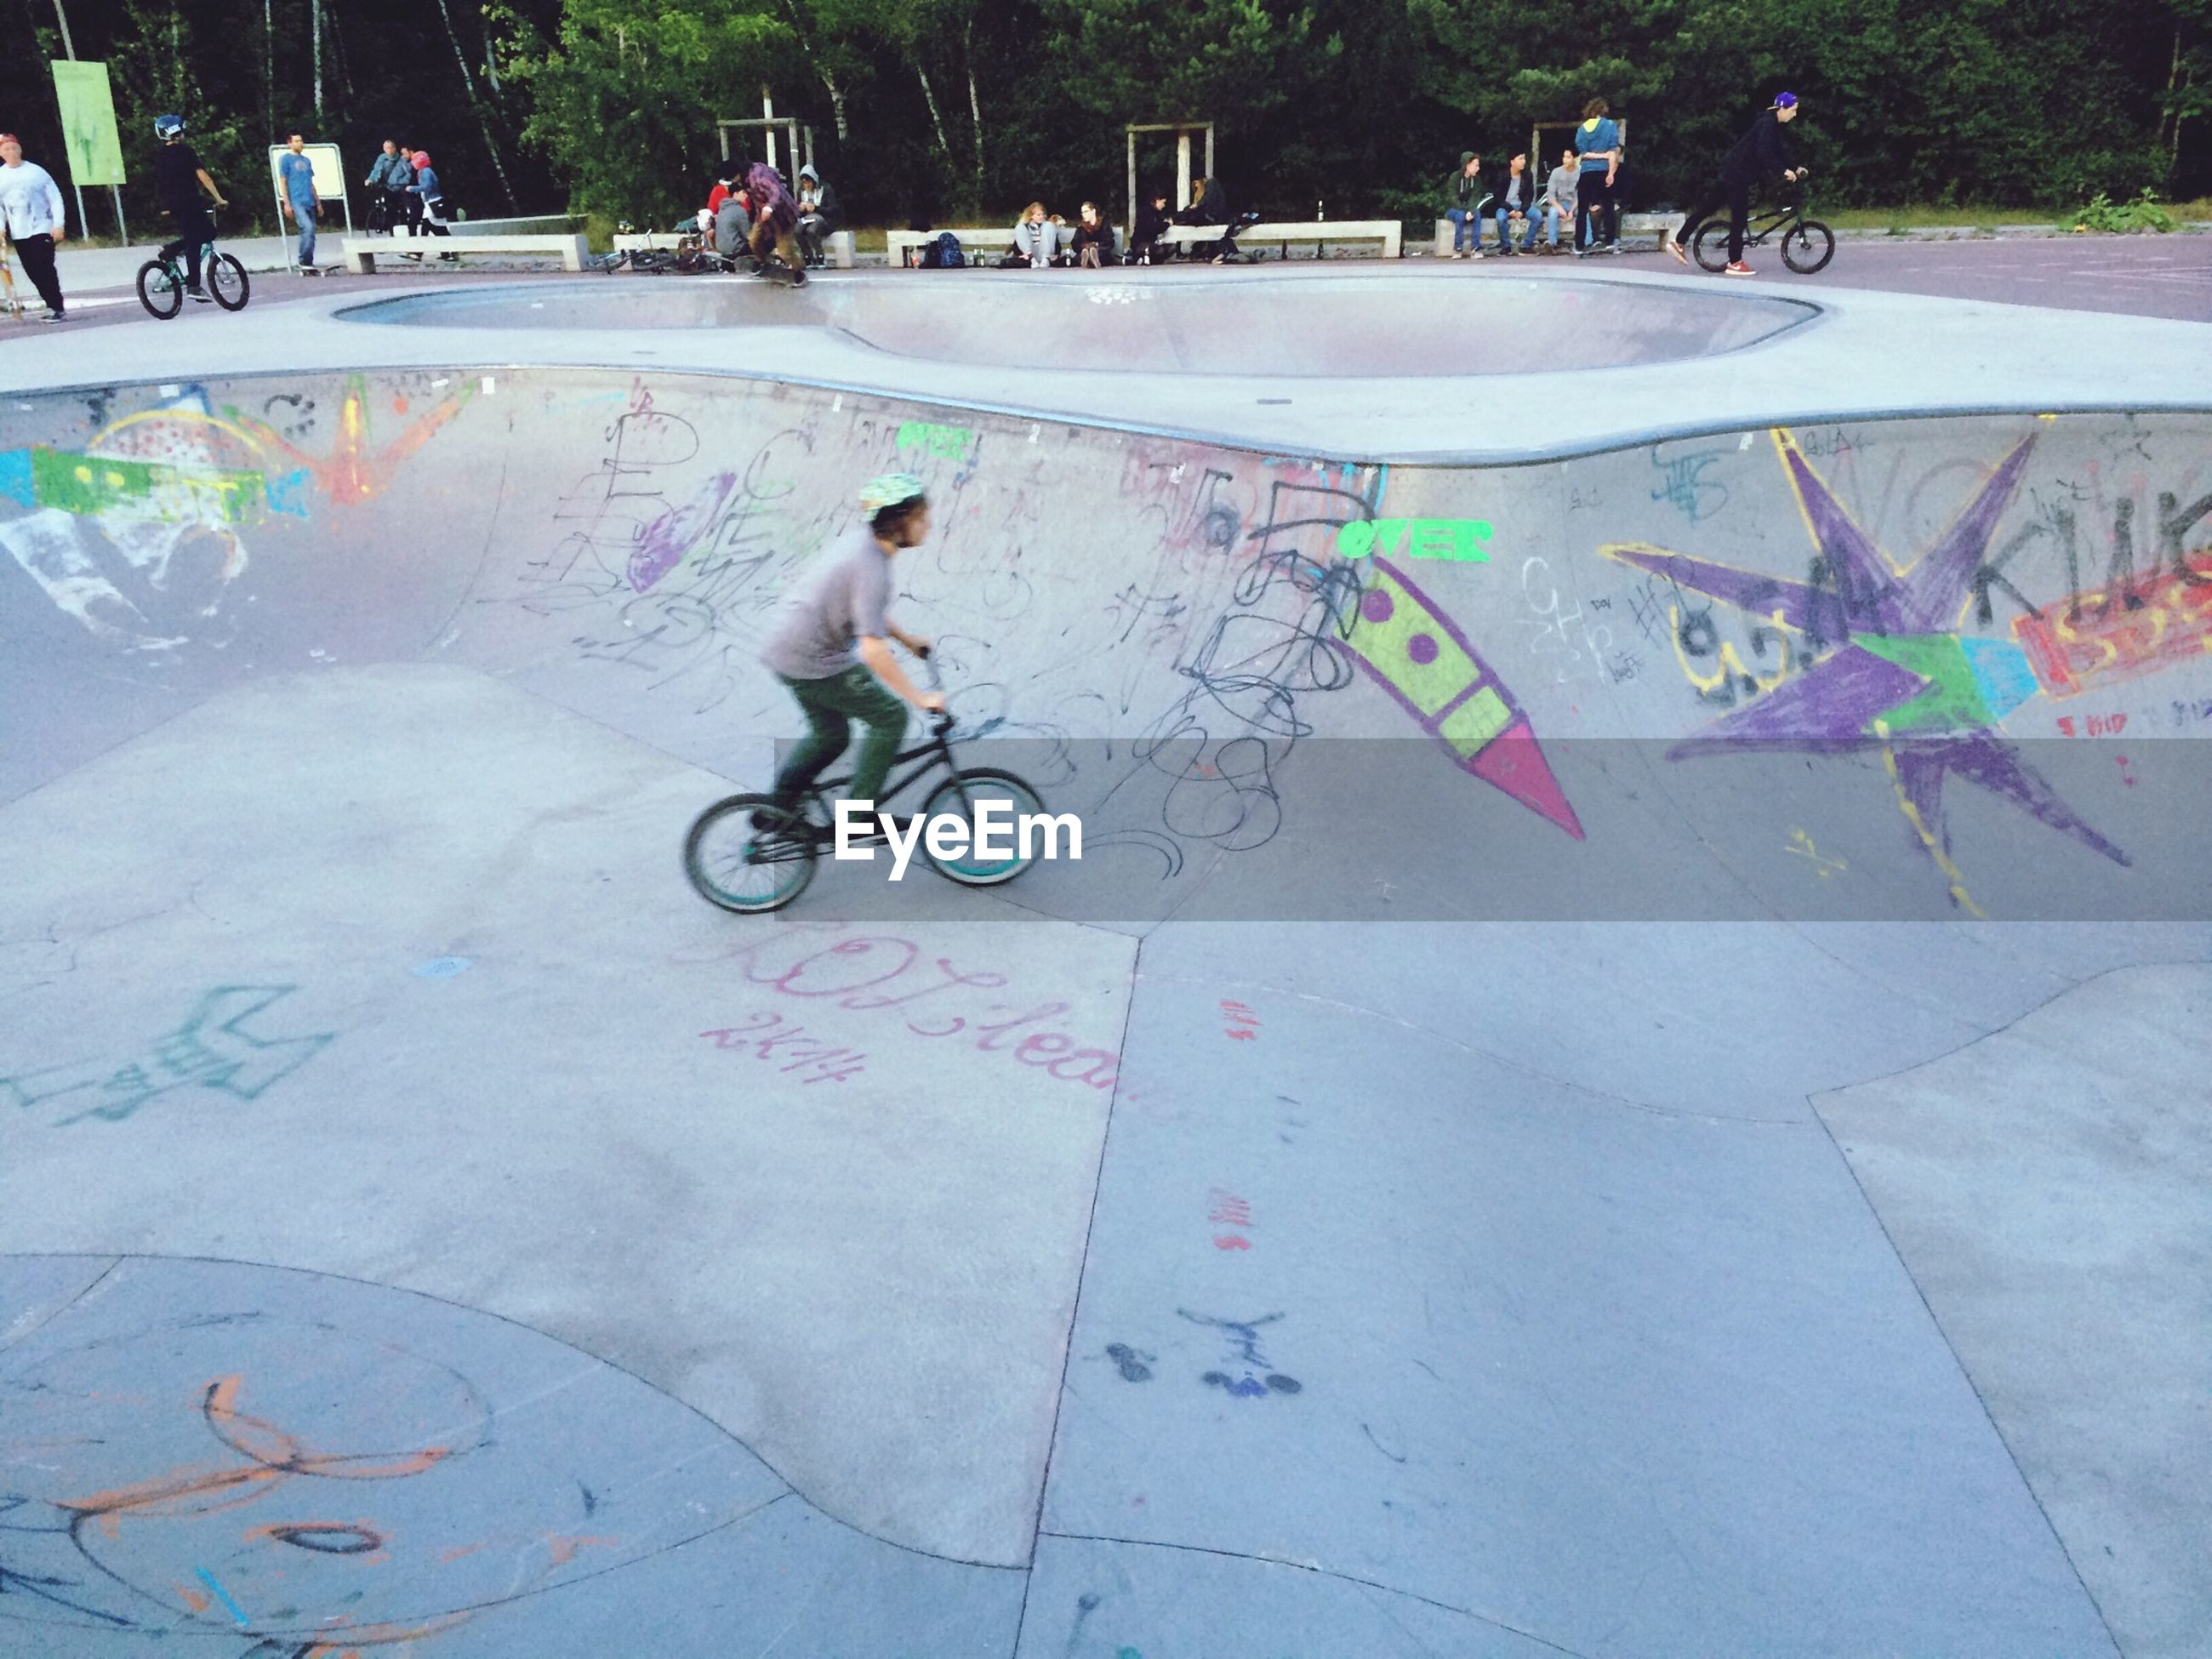 Boy riding bicycle at skateboard park